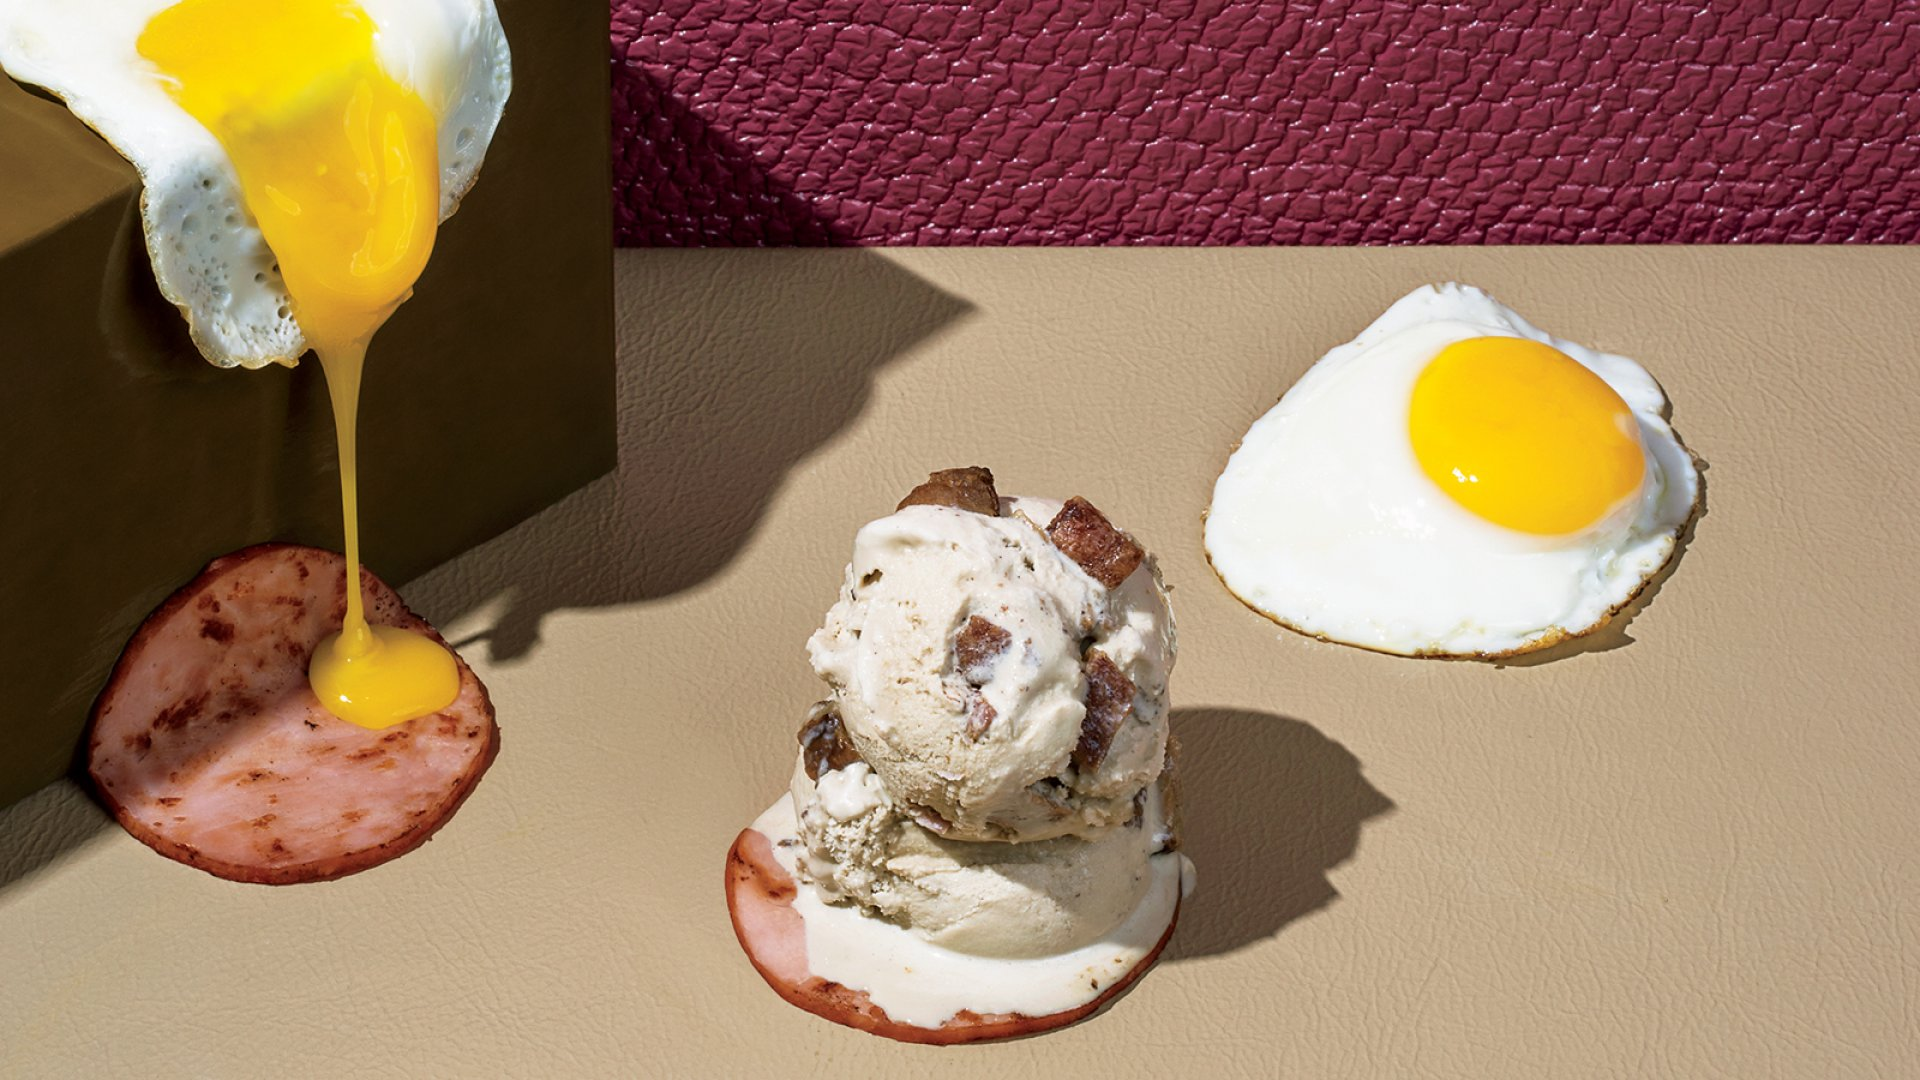 This Ice Cream Is the Hottest Dessert of the Summer, and It Tastes Like Pork